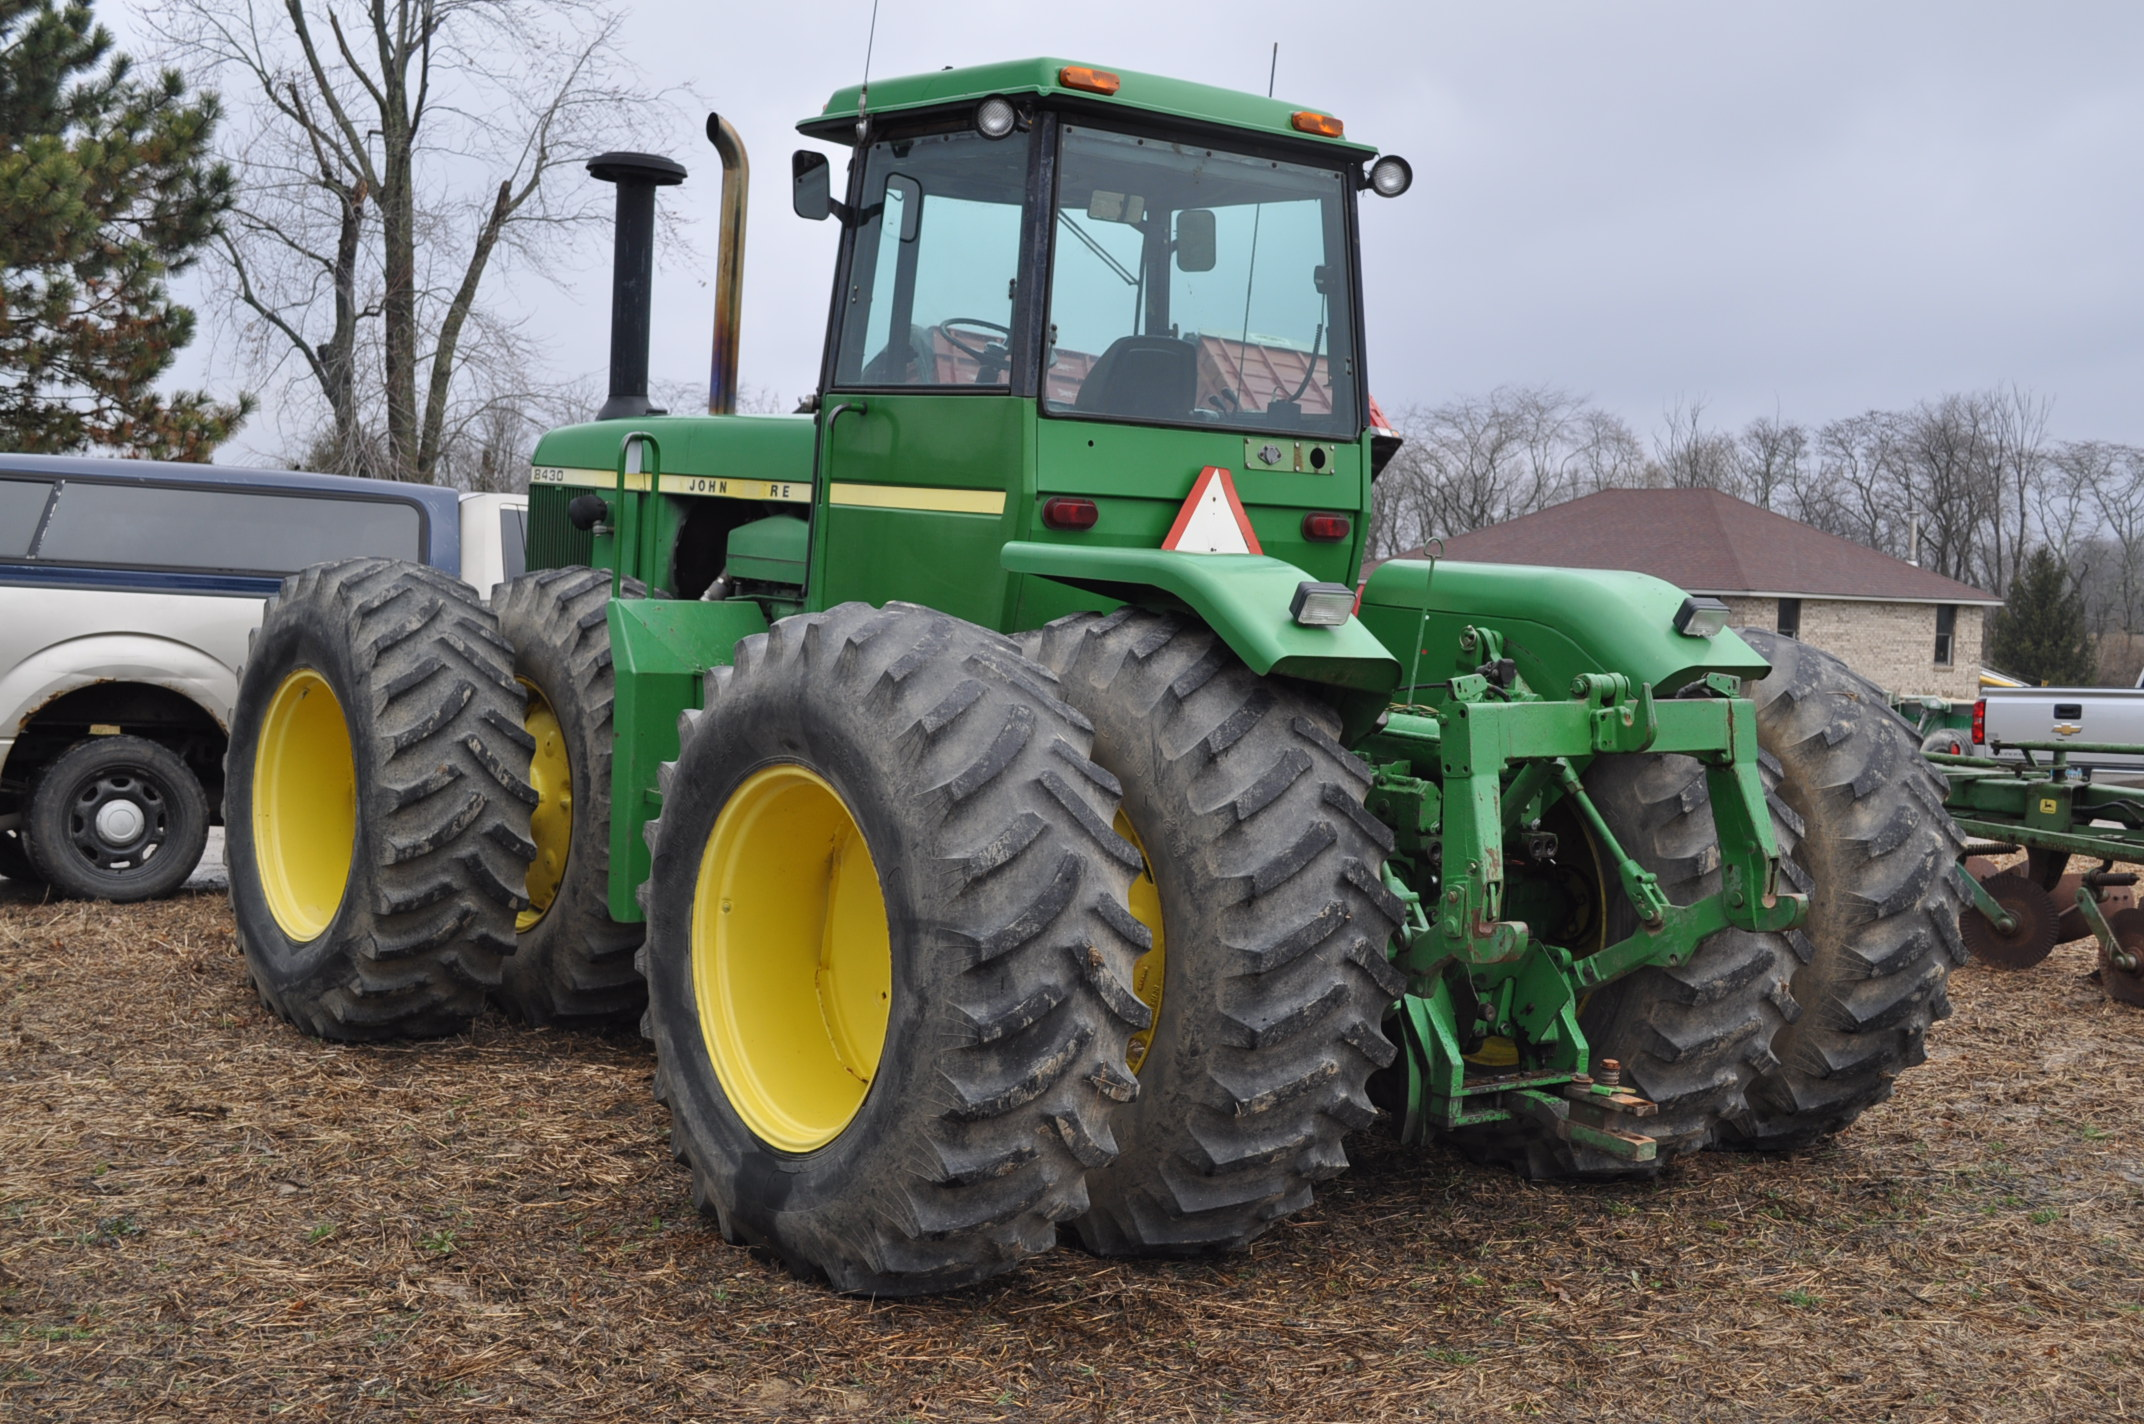 John Deere 8430 tractor, 4WD, diesel, 20.8-34 duals, CHA, Quad range, 3 hyd remotes, 1000 pto, 3 pt, - Image 2 of 19